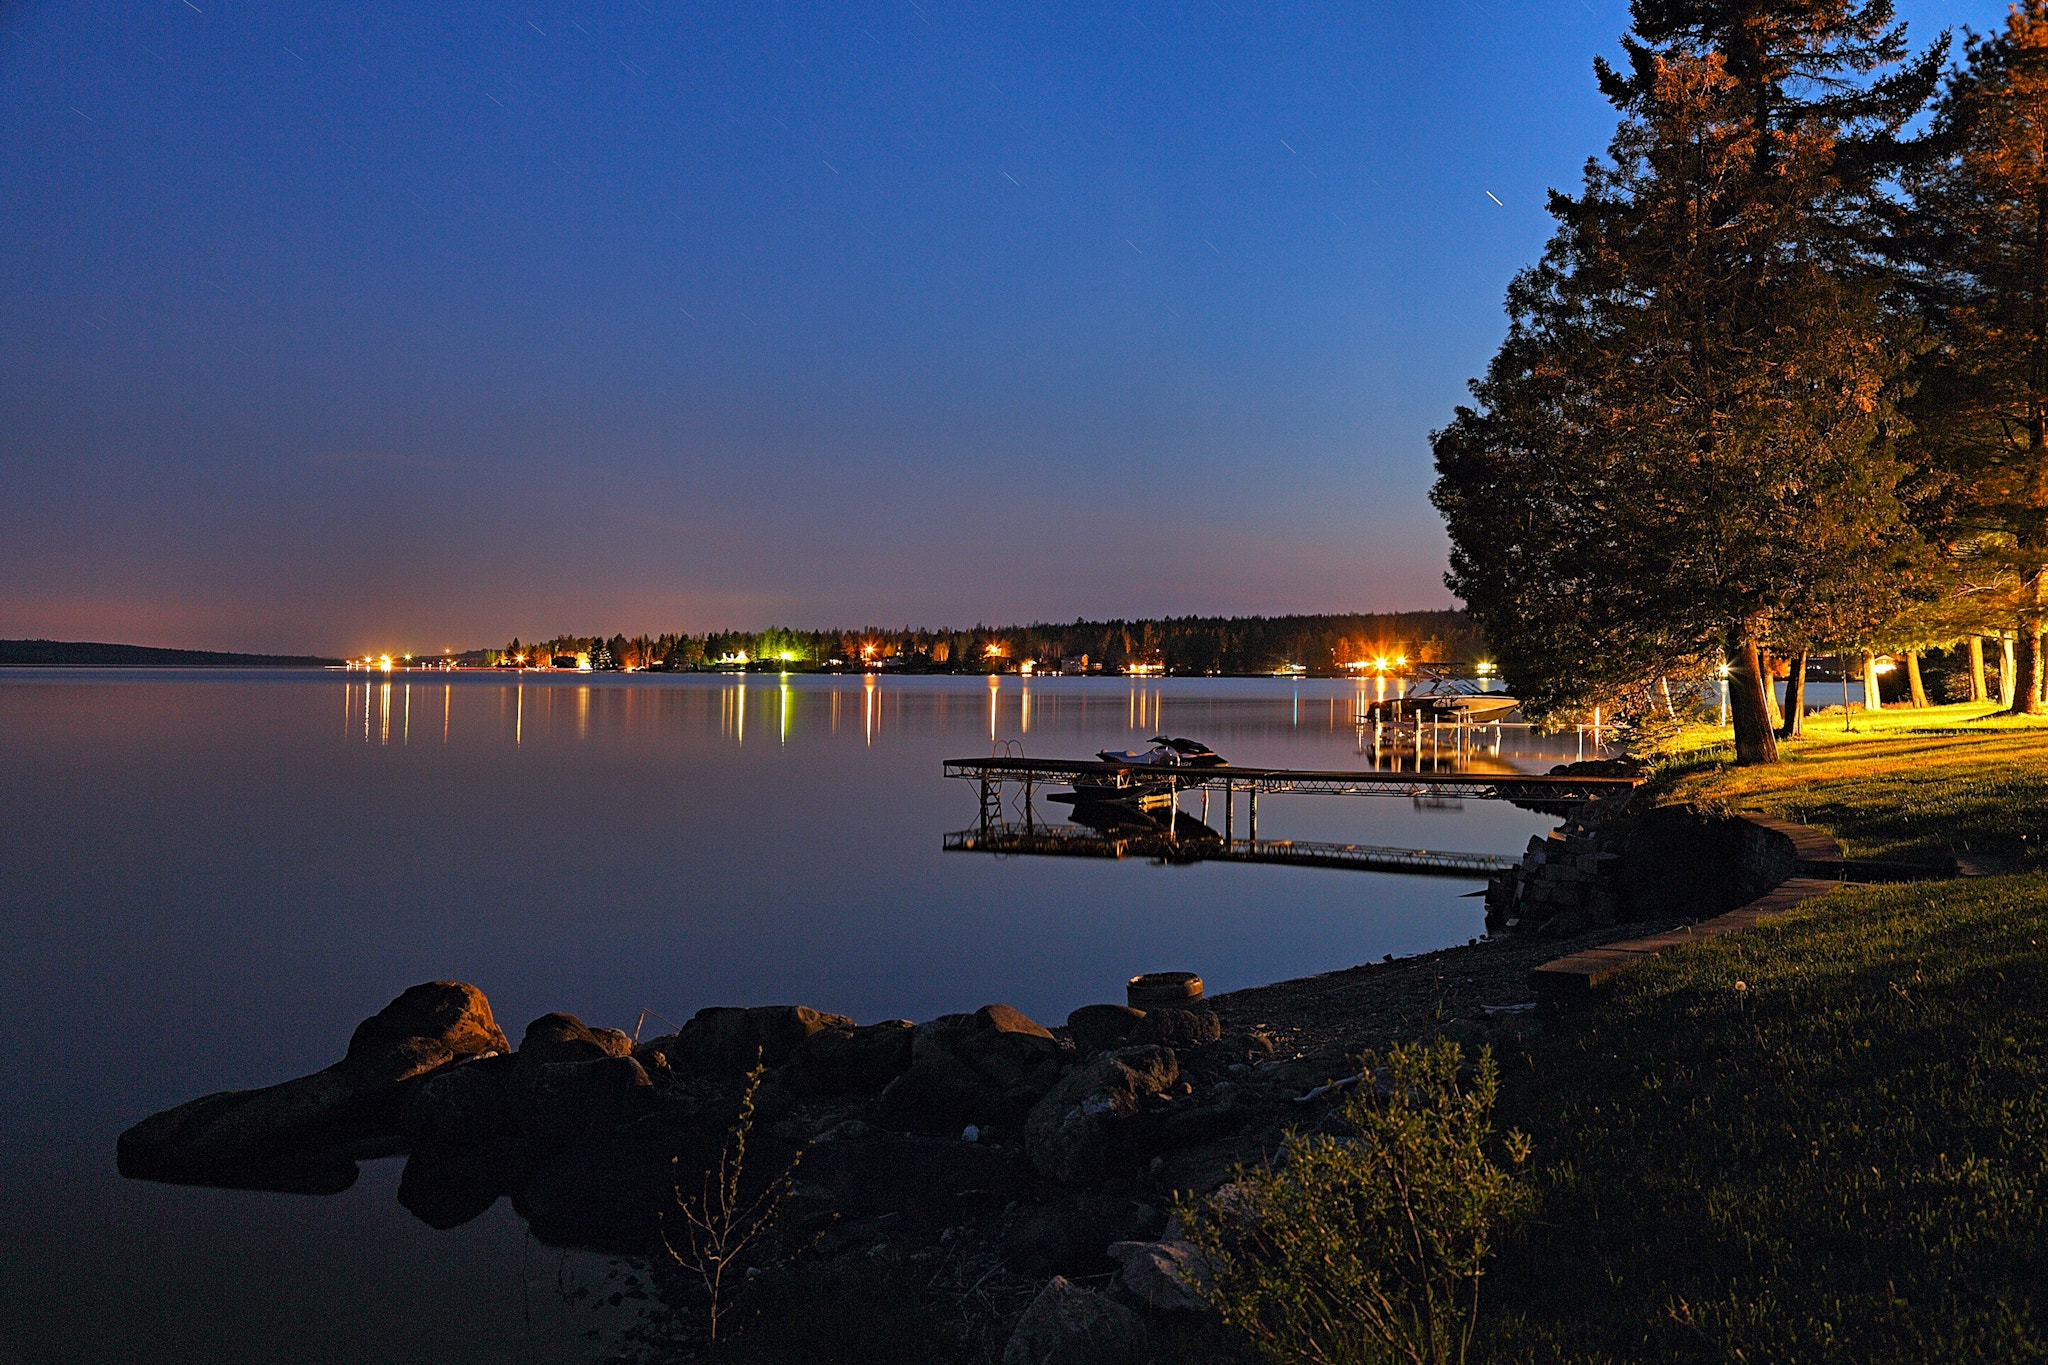 Photograph A quiet night on the lake by Jean-François Pidgeon on 500px